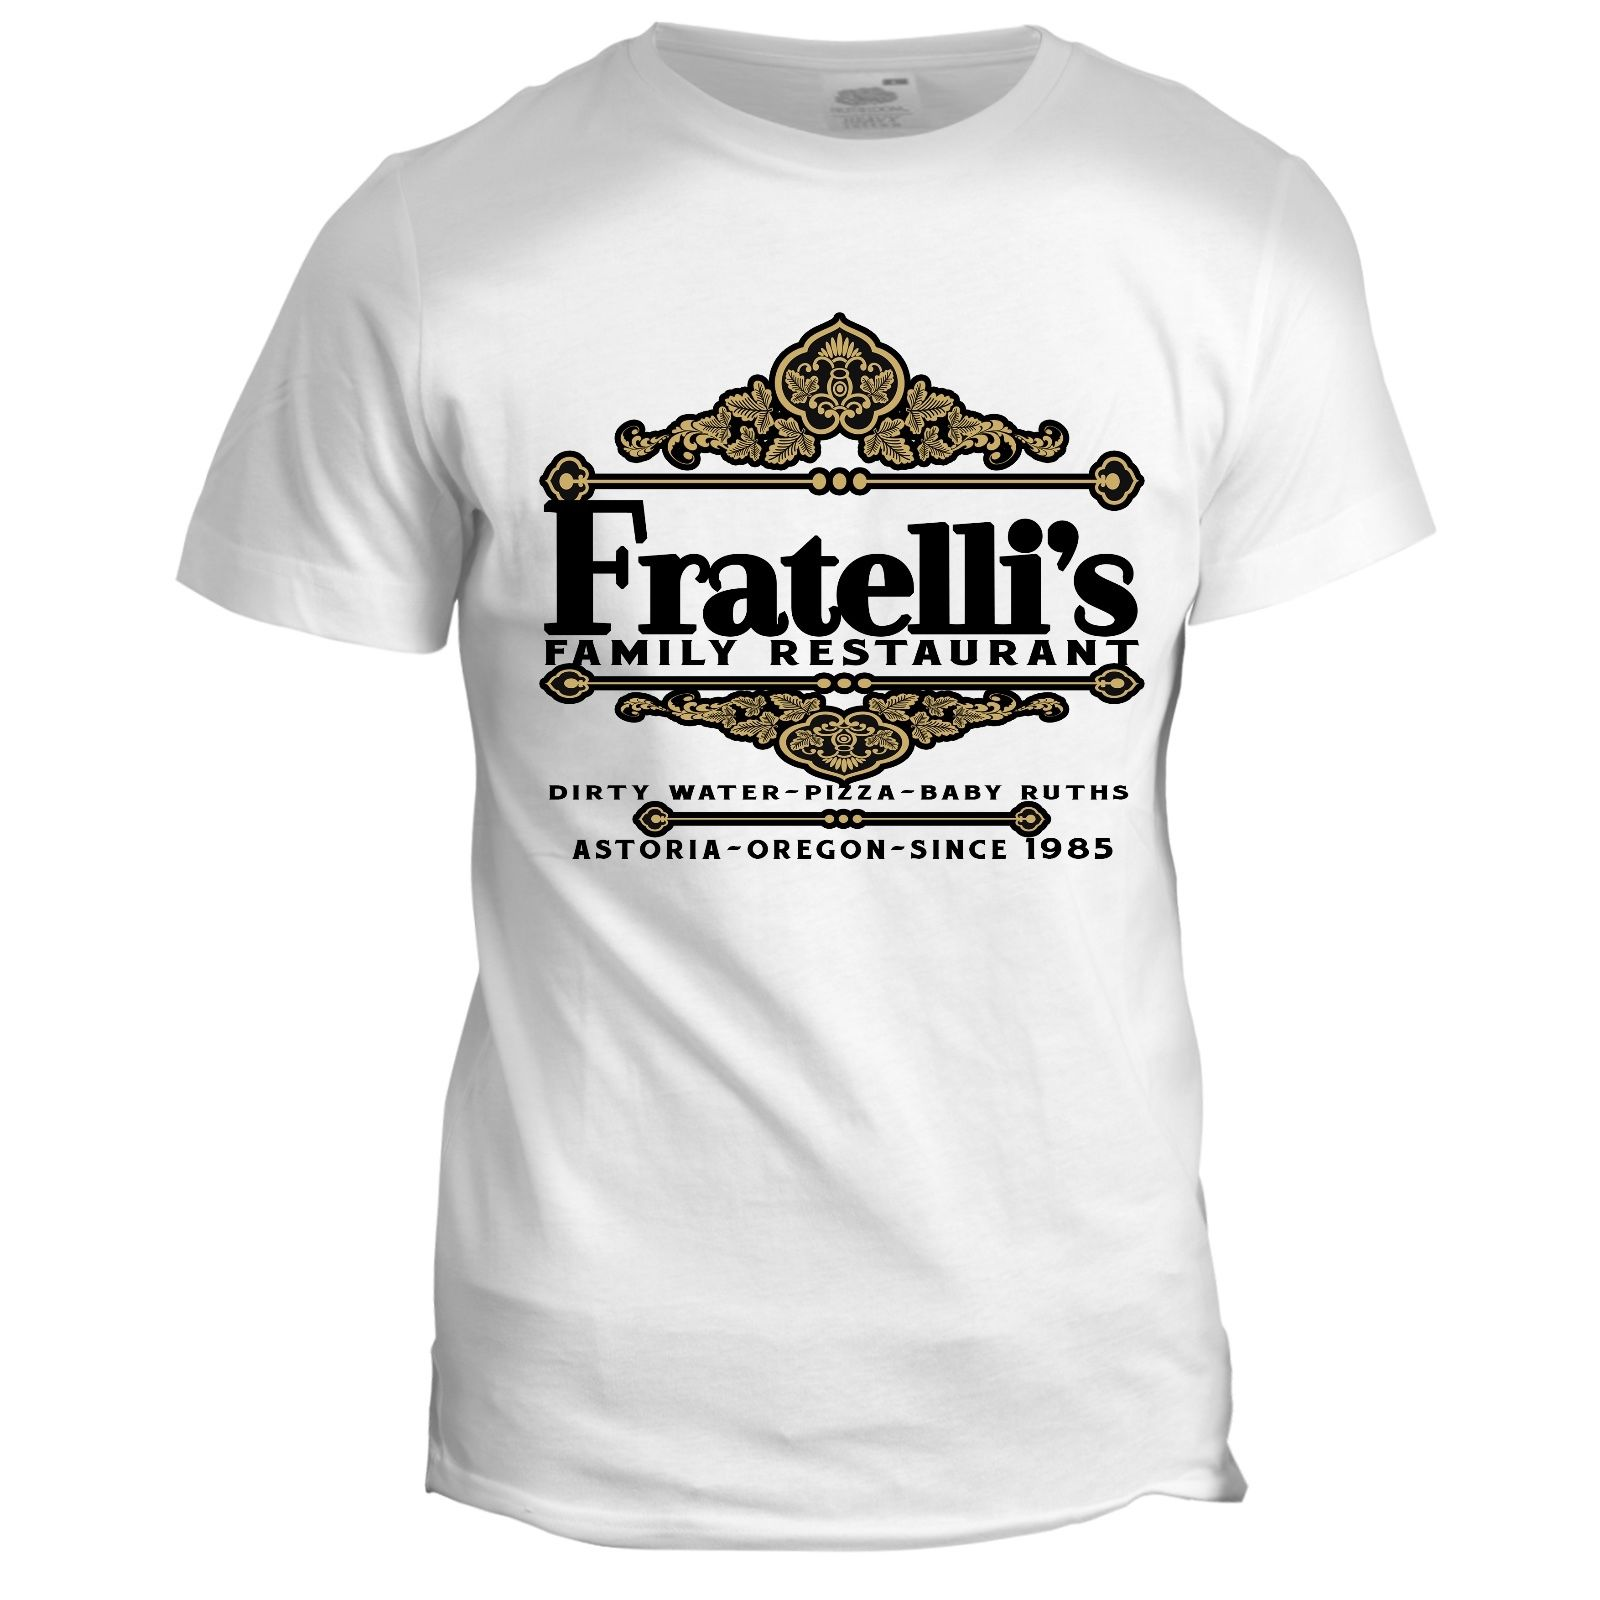 Fratelli's Restaurant Inspired The Goonies 80s Retro Italian Movie Film T Shirt Fashion Cotton T-Shirts Base Shirt image